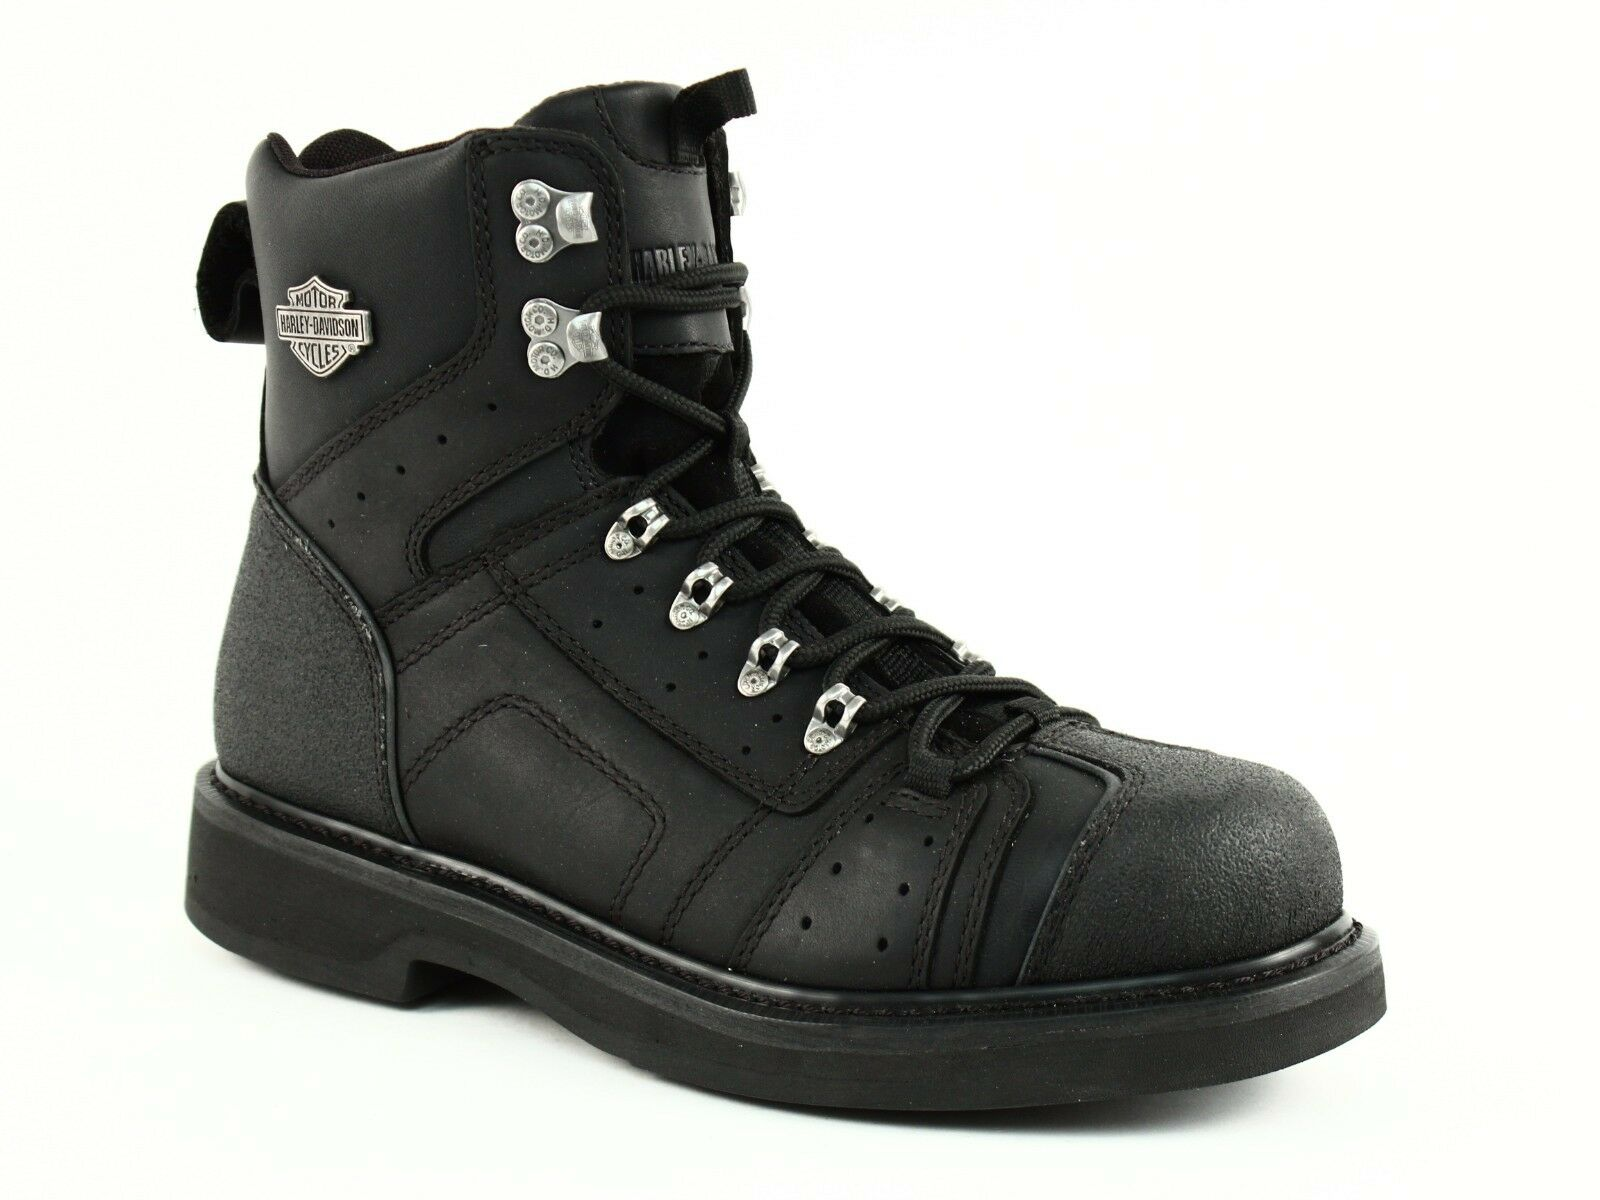 Harley Davidson LENNI Mens Motorcycle Riding Lace Zip Black Leather Boot US-9